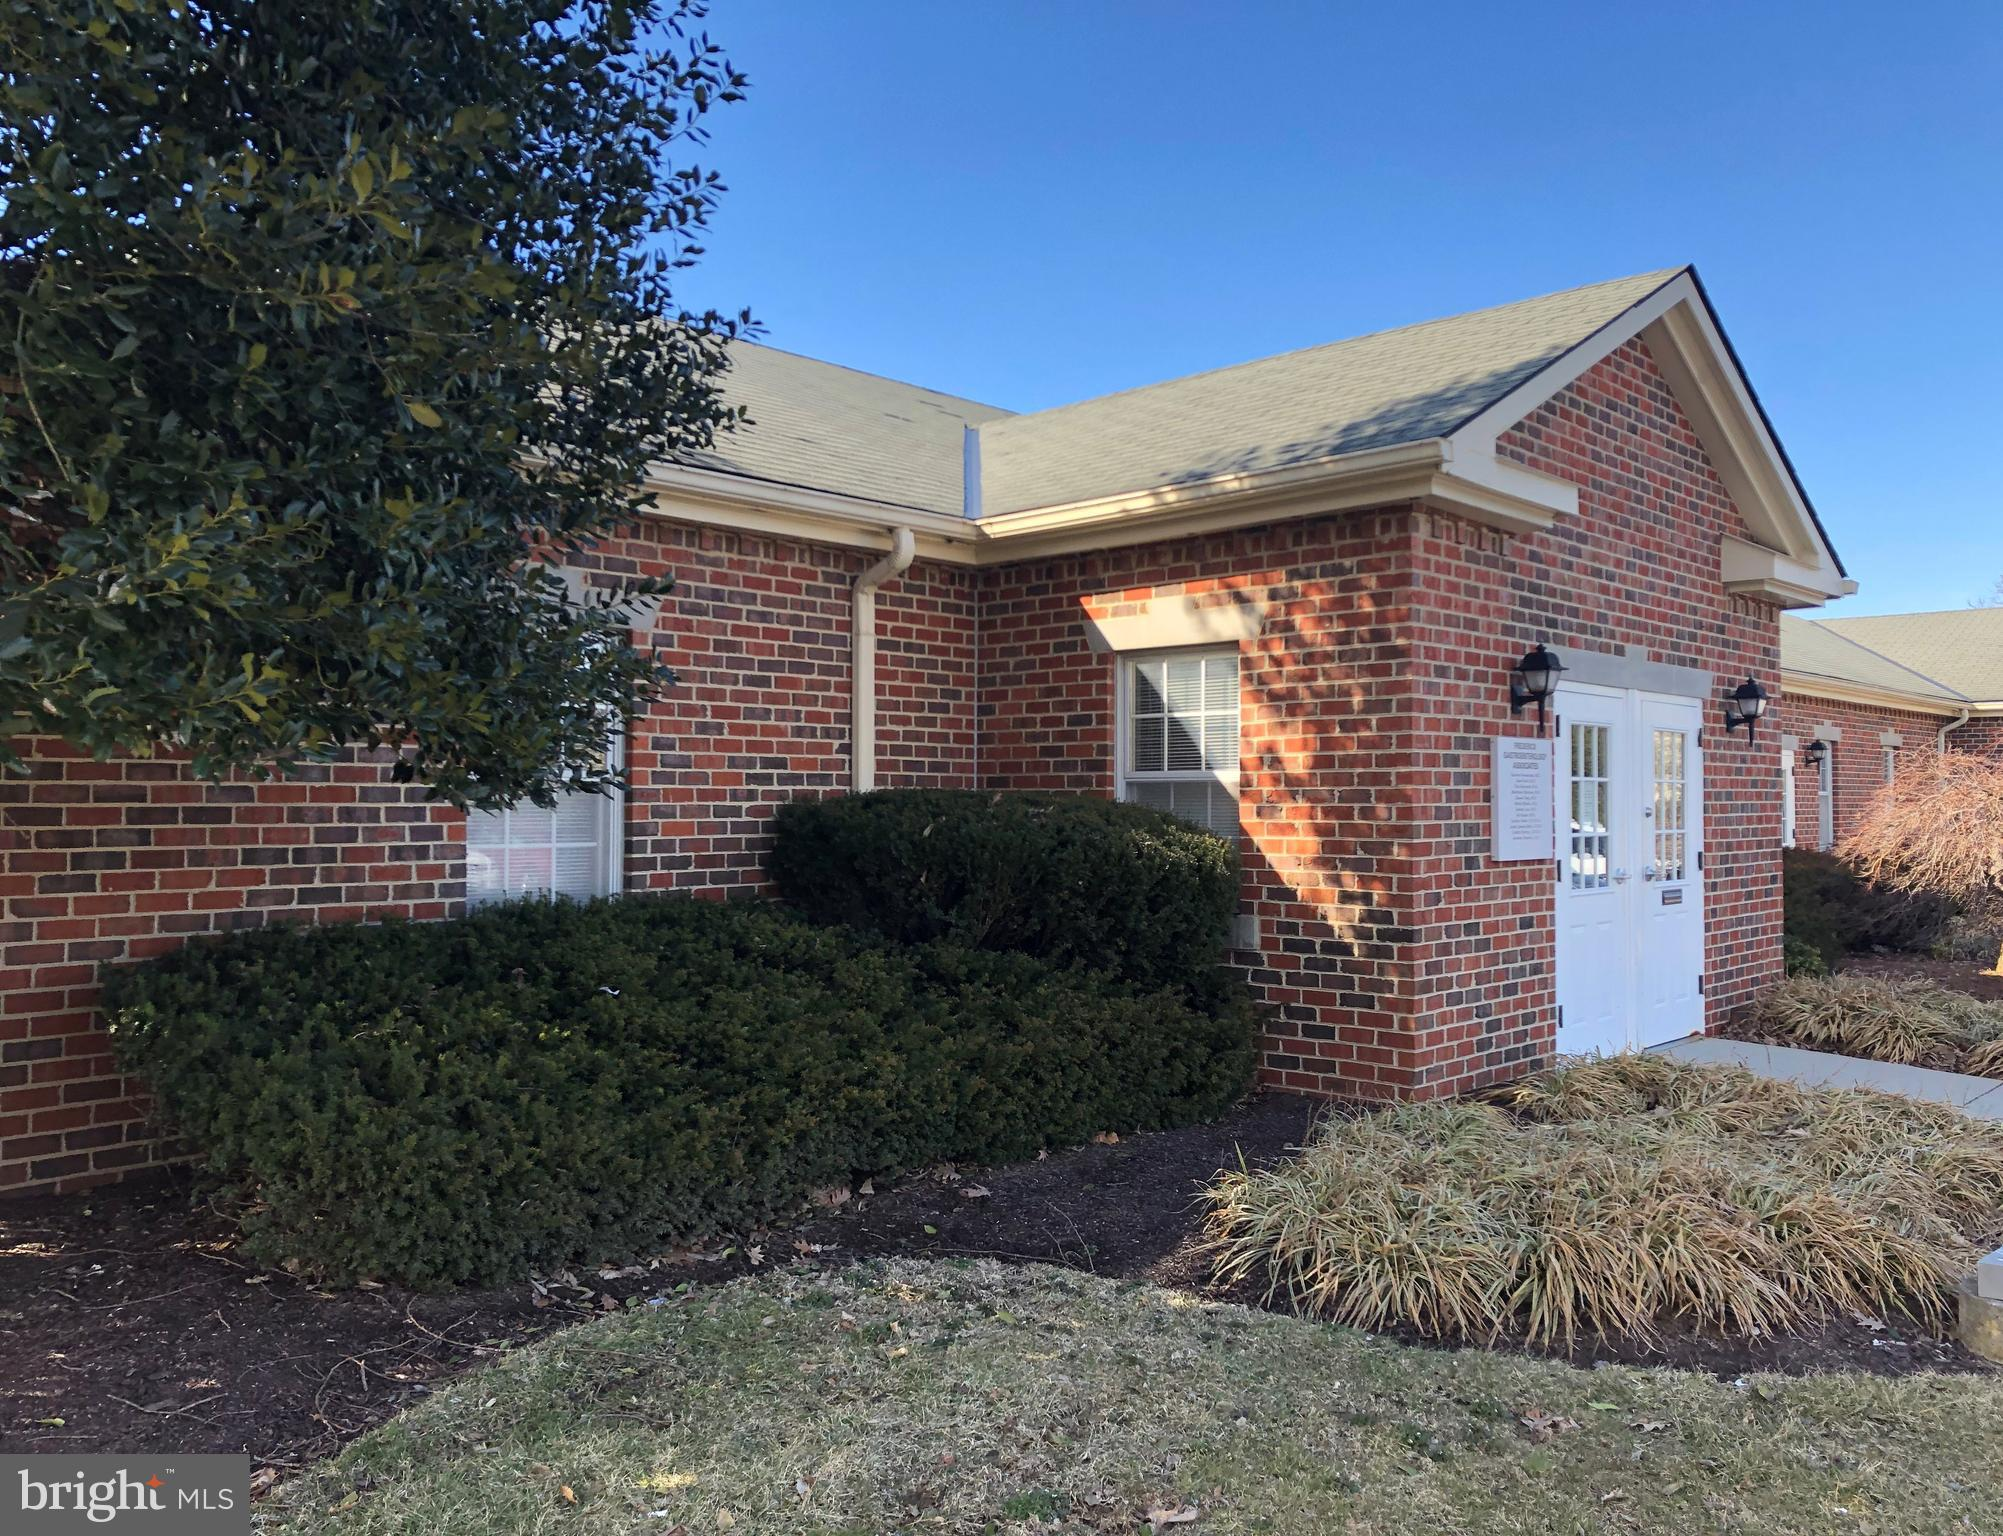 310 WEST 9TH STREET, FREDERICK, MD 21701